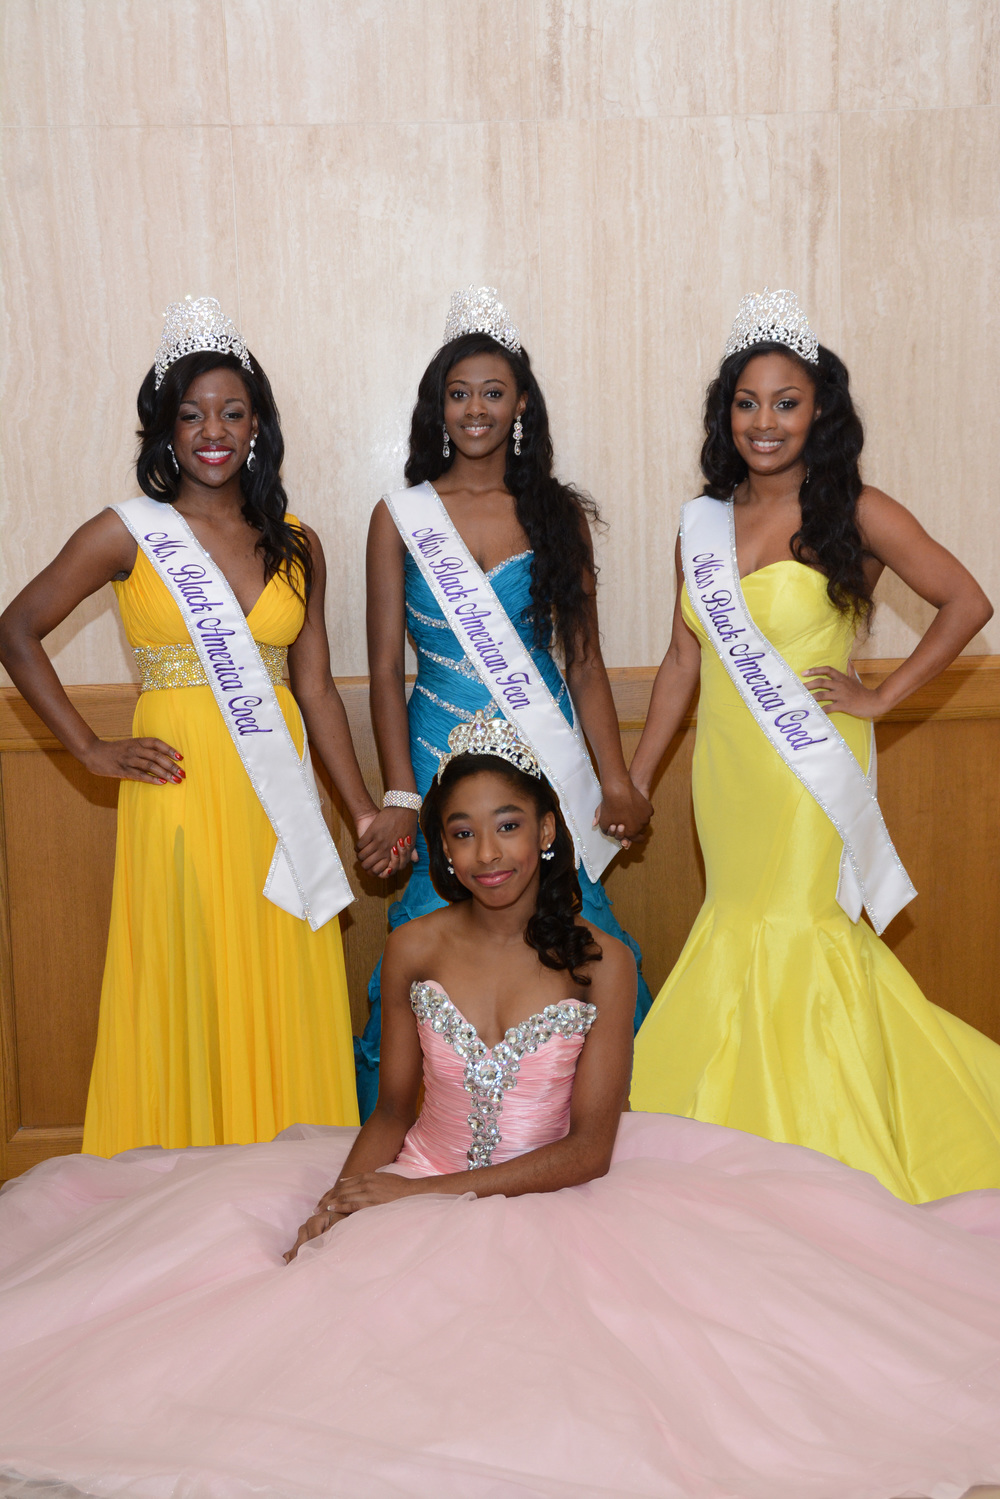 black preteen Miss Black America Coed 2015 queens Roneshia Ray (Miss), Kaylah Baker (Teen